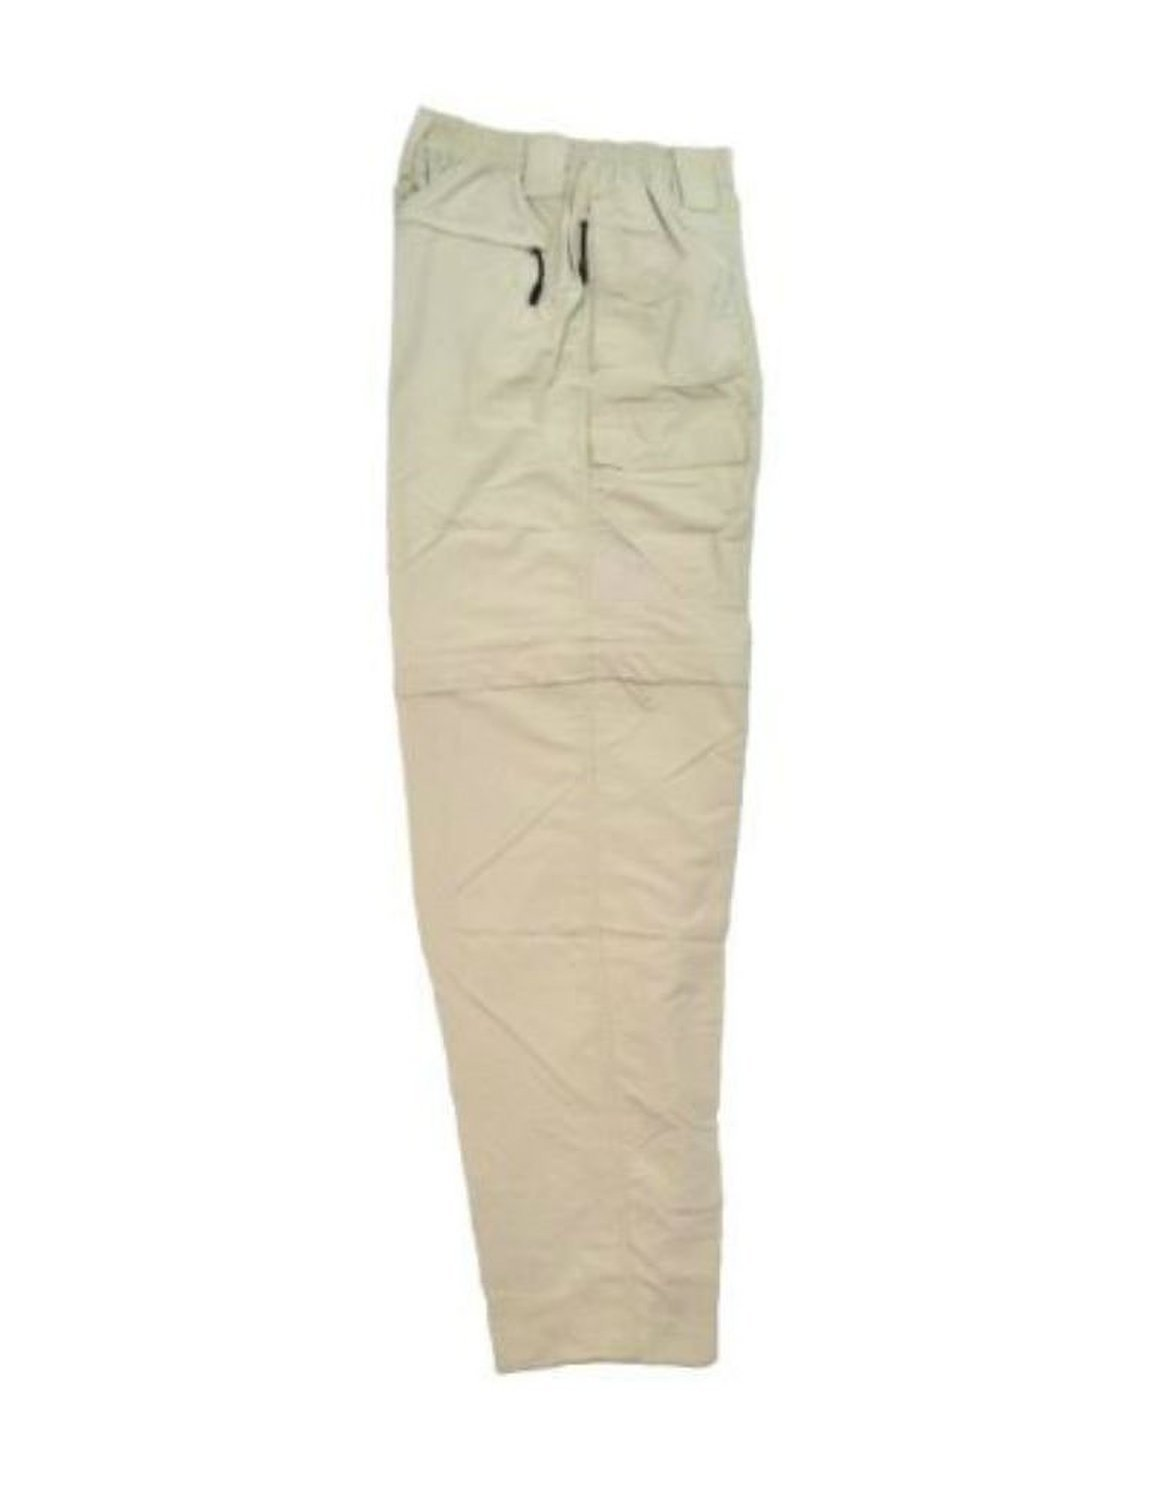 Bimini Bay Outfitters Men's Grand Cayman Zip-Off Nylon Pants 61670 Fossil XL by Bimini Bay Outfitters